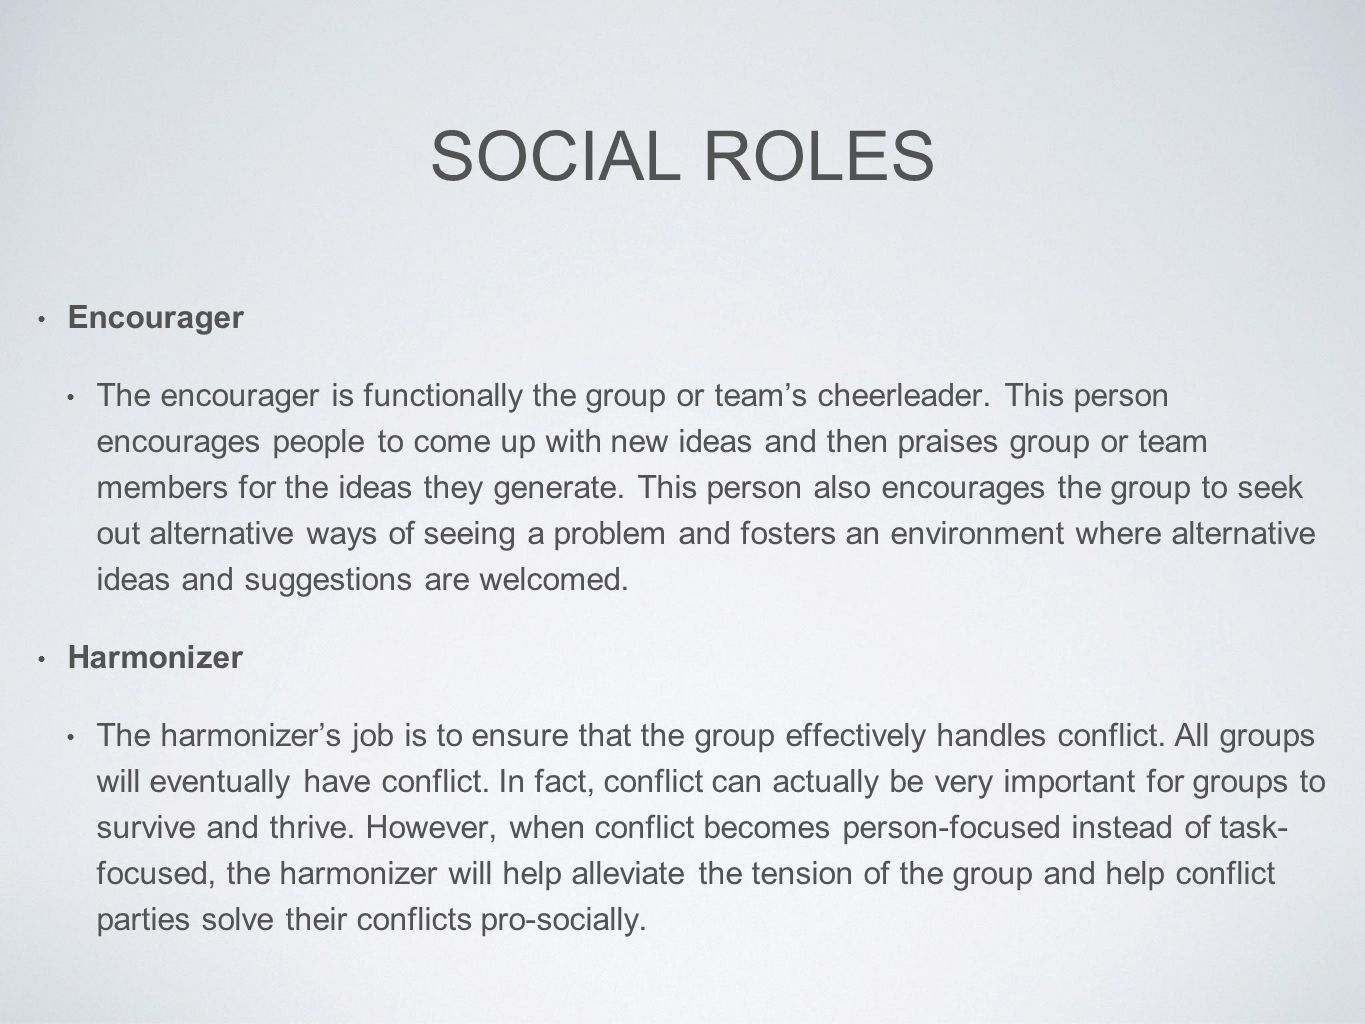 role as an encourager in a group 10 award 1000 points 11 award 1000 points the 3 cs of effective teams 1000 points a _____ is a set of expected behaviors for members of the group as a whole group role group norm task role maintenance role group competency a role is a gatekeeper standard setter encourager.